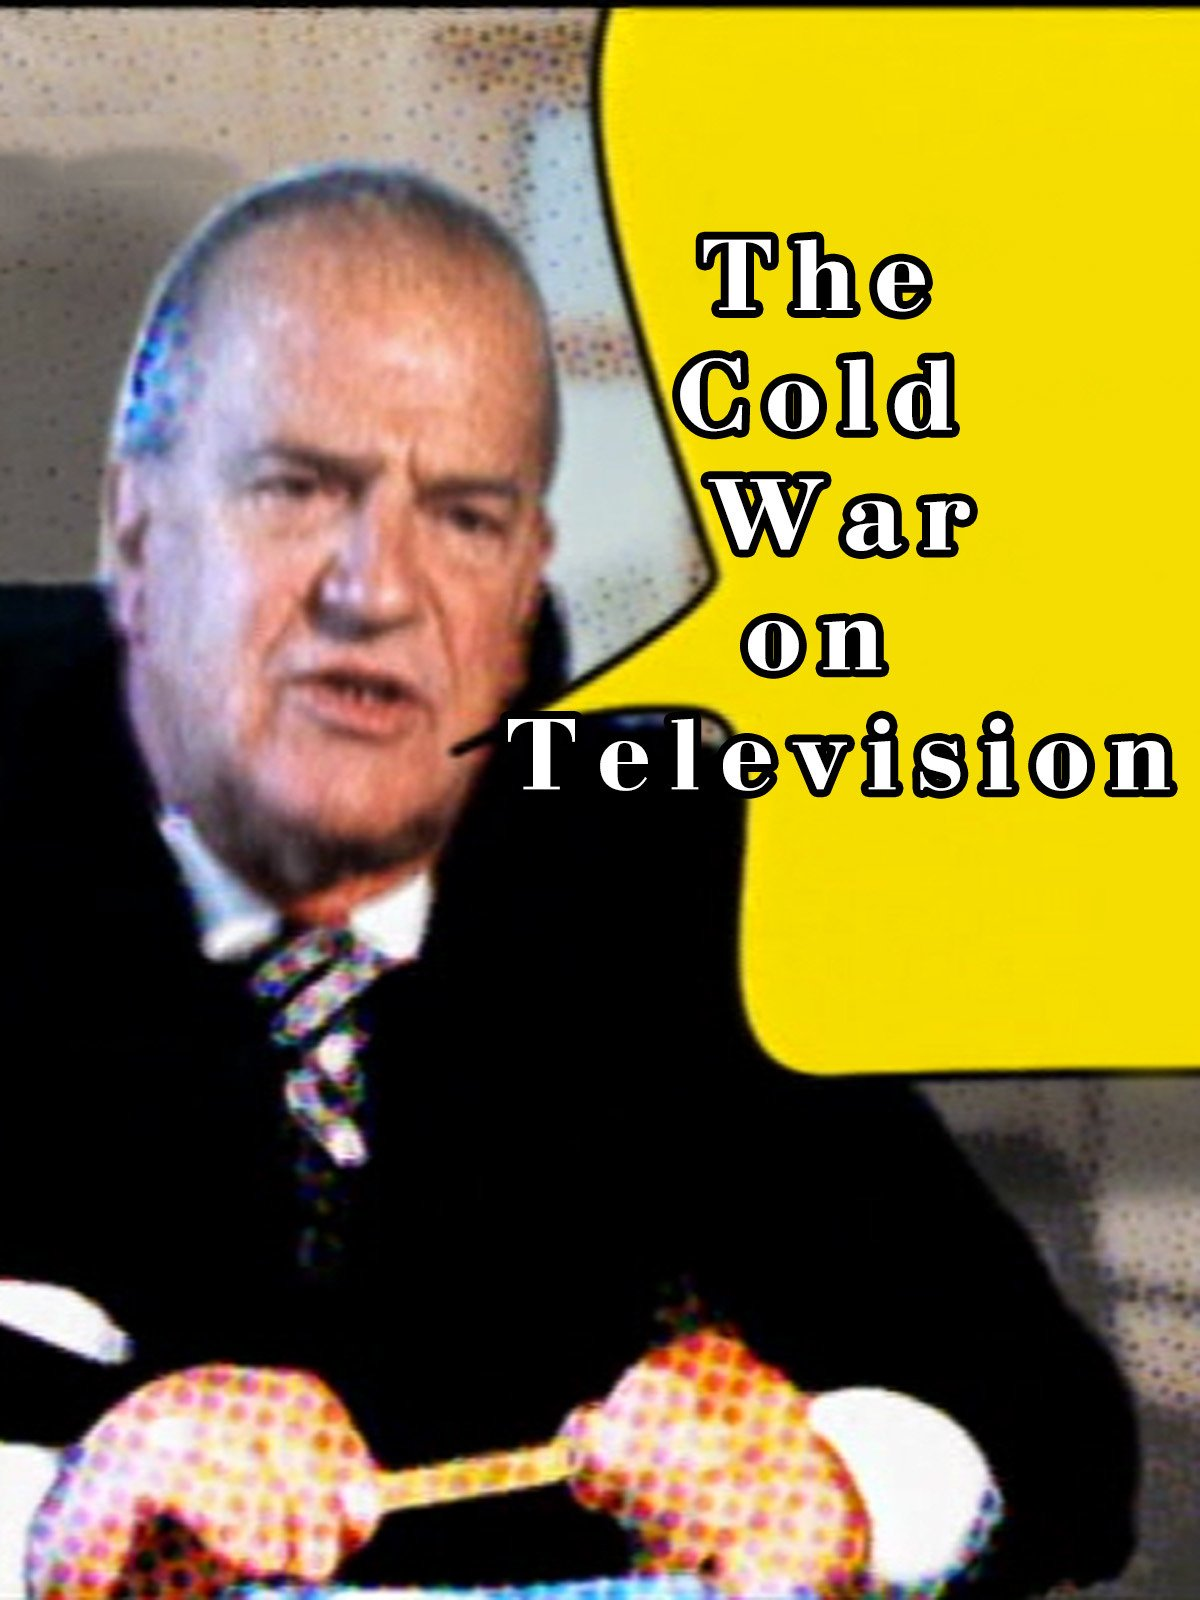 The Cold War on Television